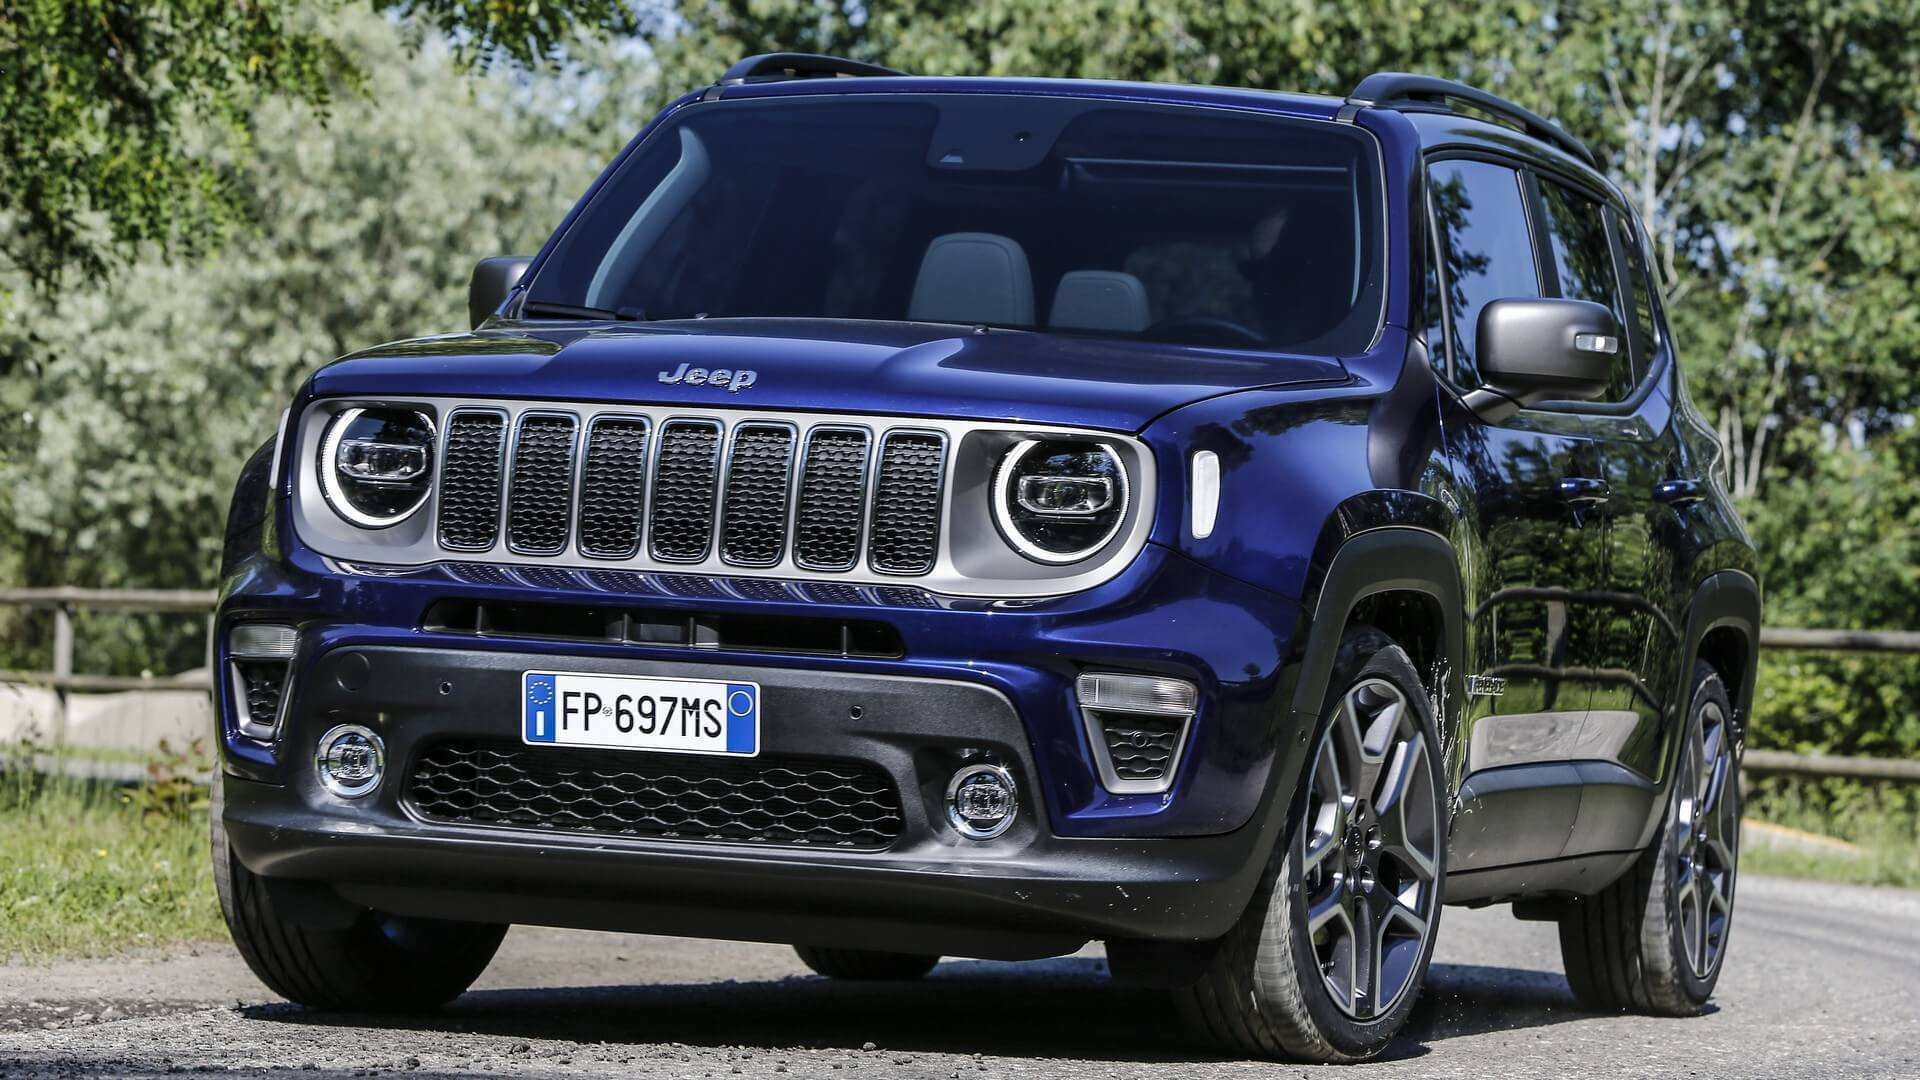 18 All New The Jeep Hybrid 2019 Release Date Concept by The Jeep Hybrid 2019 Release Date